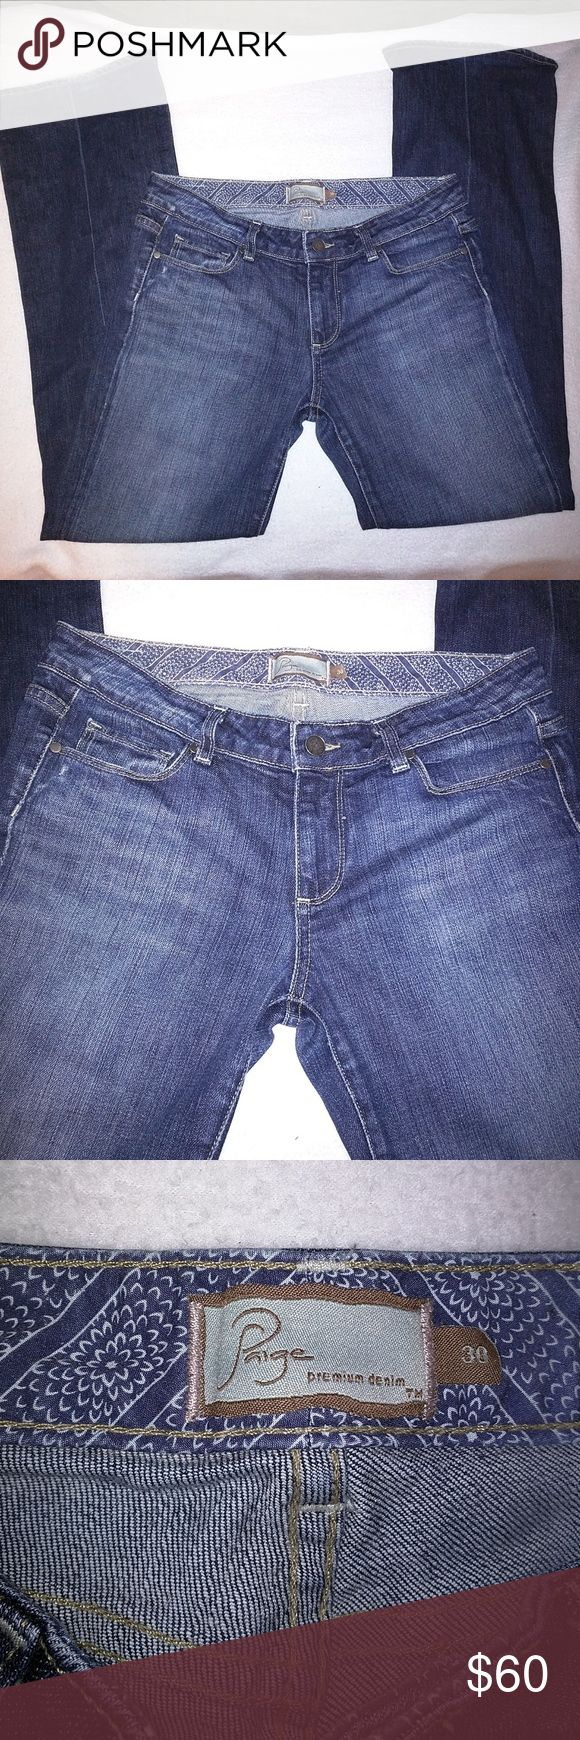 Paige, premium denim laural canyon jeans 30 Excellent condition, gently used, Paige premium denim Laurel Canyon jeans. Size 30, length is 38 inches, inseam is 30 inches. 98% cotton, 2% spandex, made in the USA. Paige Jeans Jeans Boot Cut